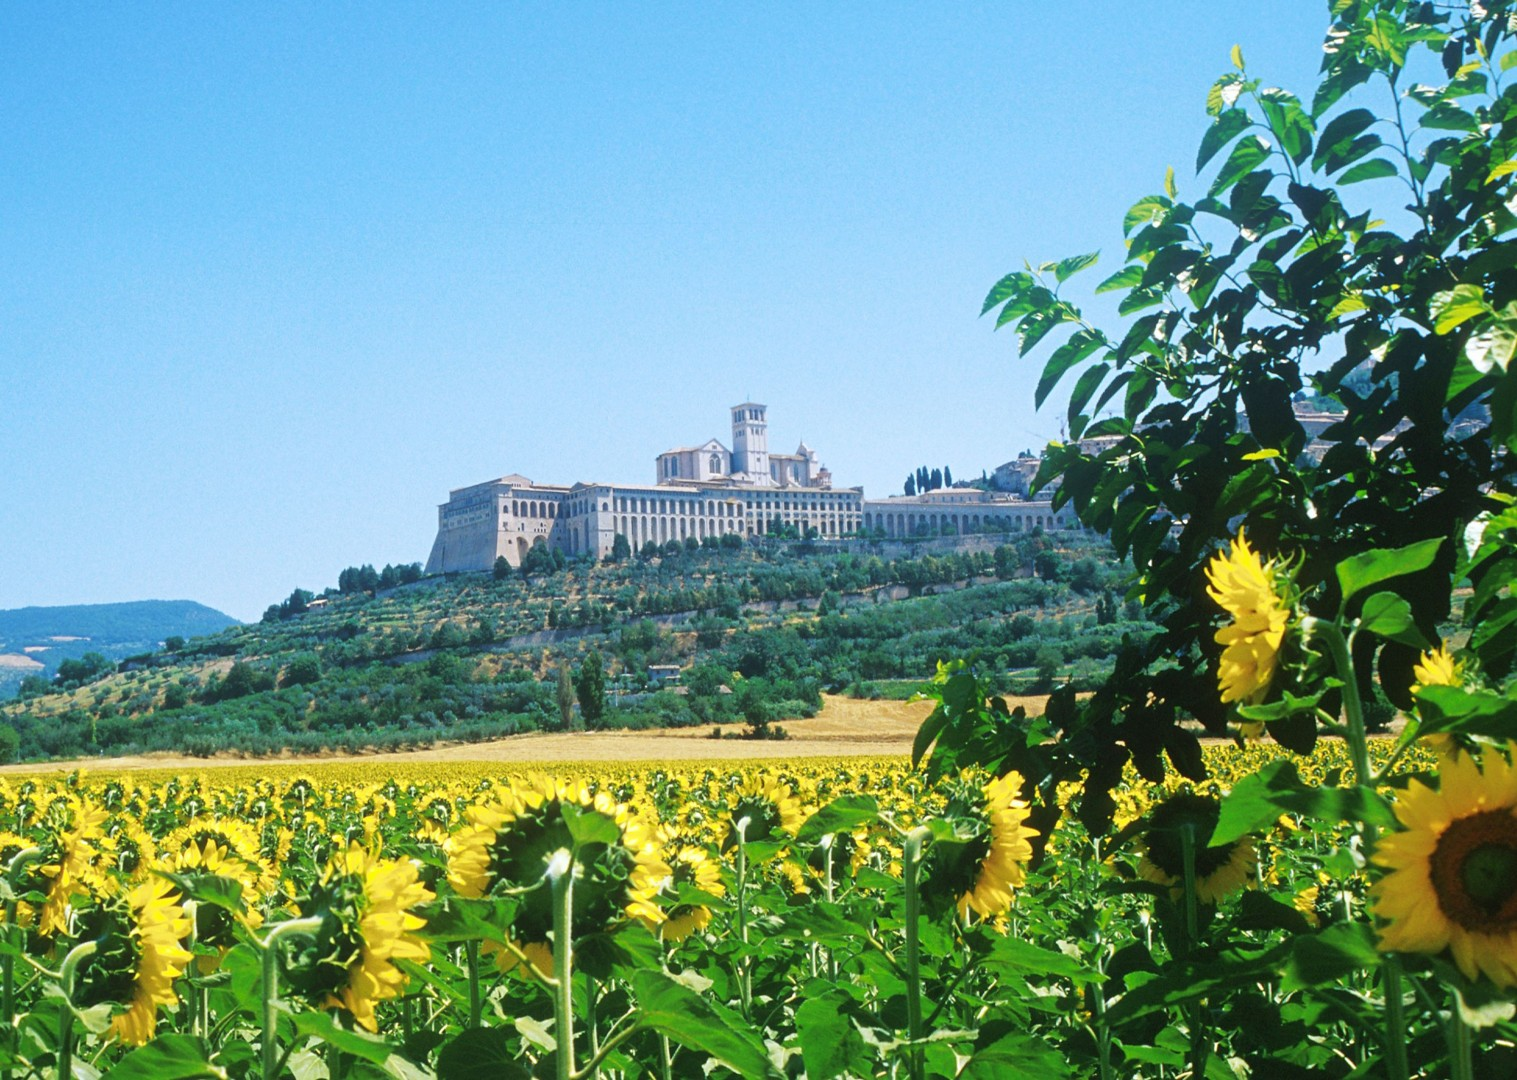 basilica-of-assisi-leisure-cycling-holiday-italy-green-heart-of-umbria.jpg - Italy - Green Heart of Umbria - Self-Guided Leisure Cycling Holiday - Leisure Cycling